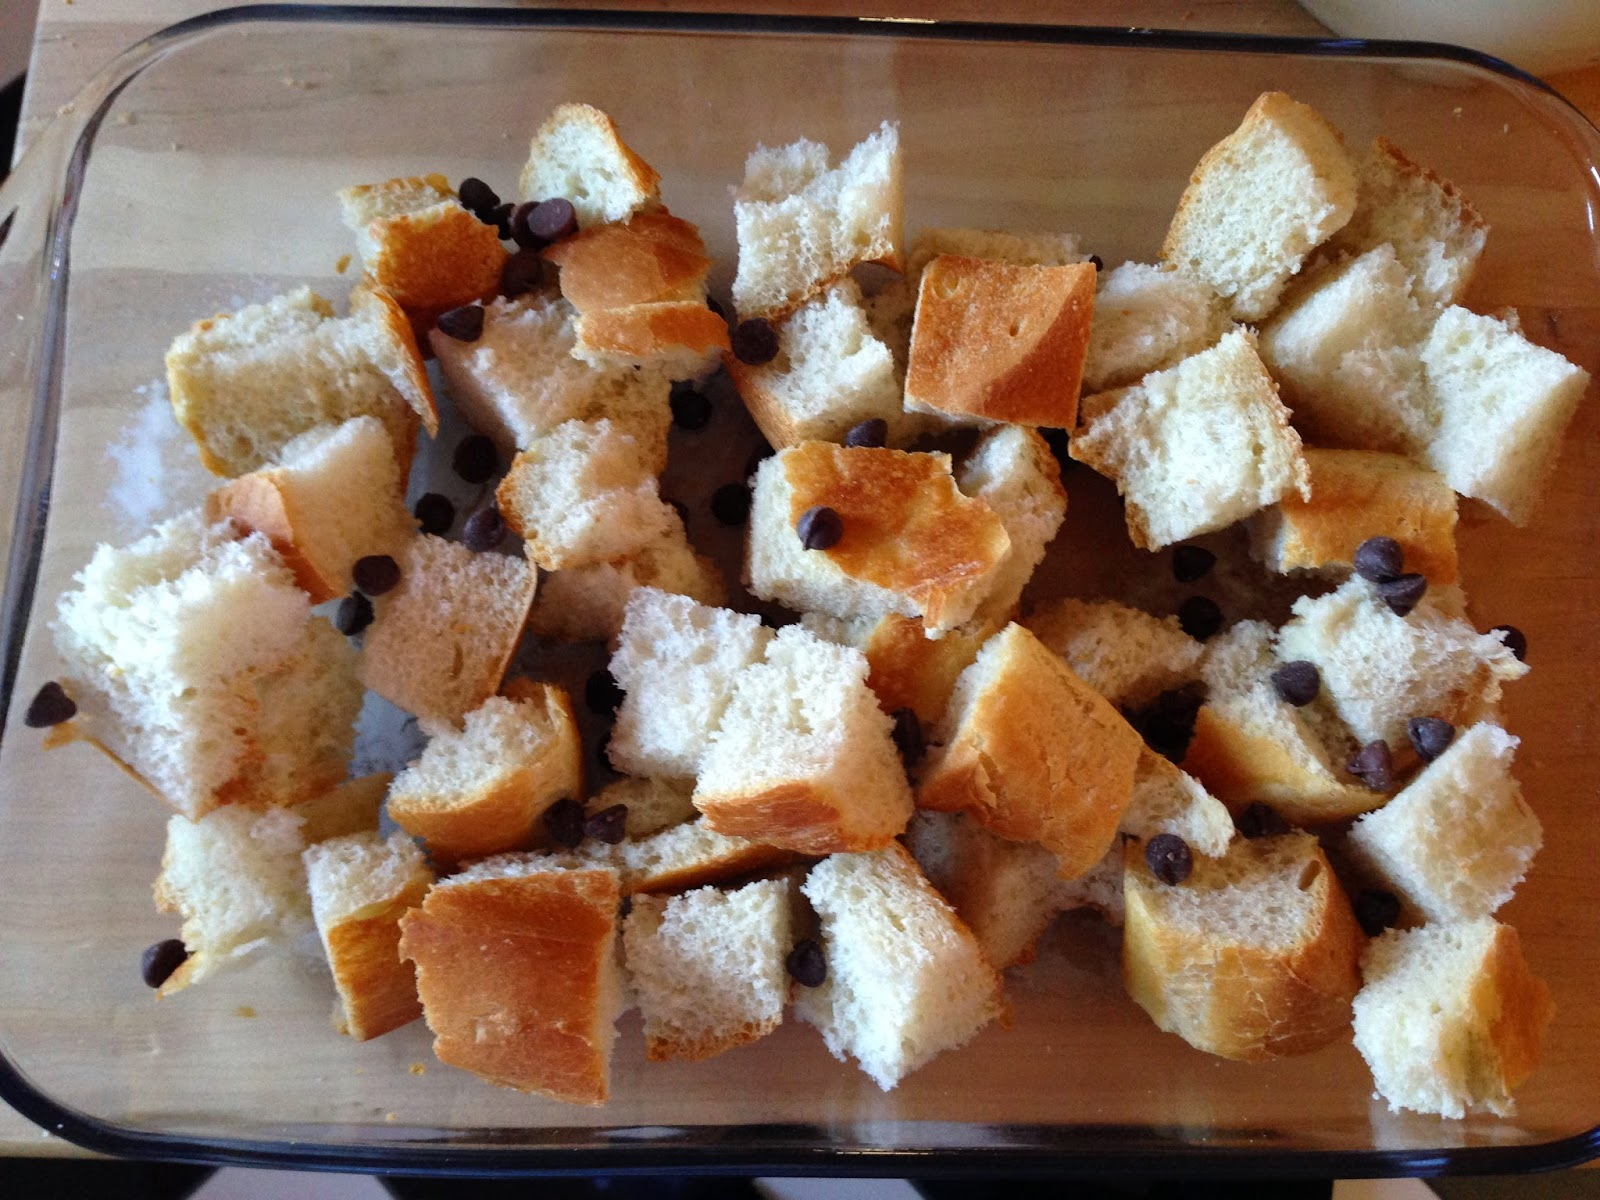 bread cubes with chocolate chips